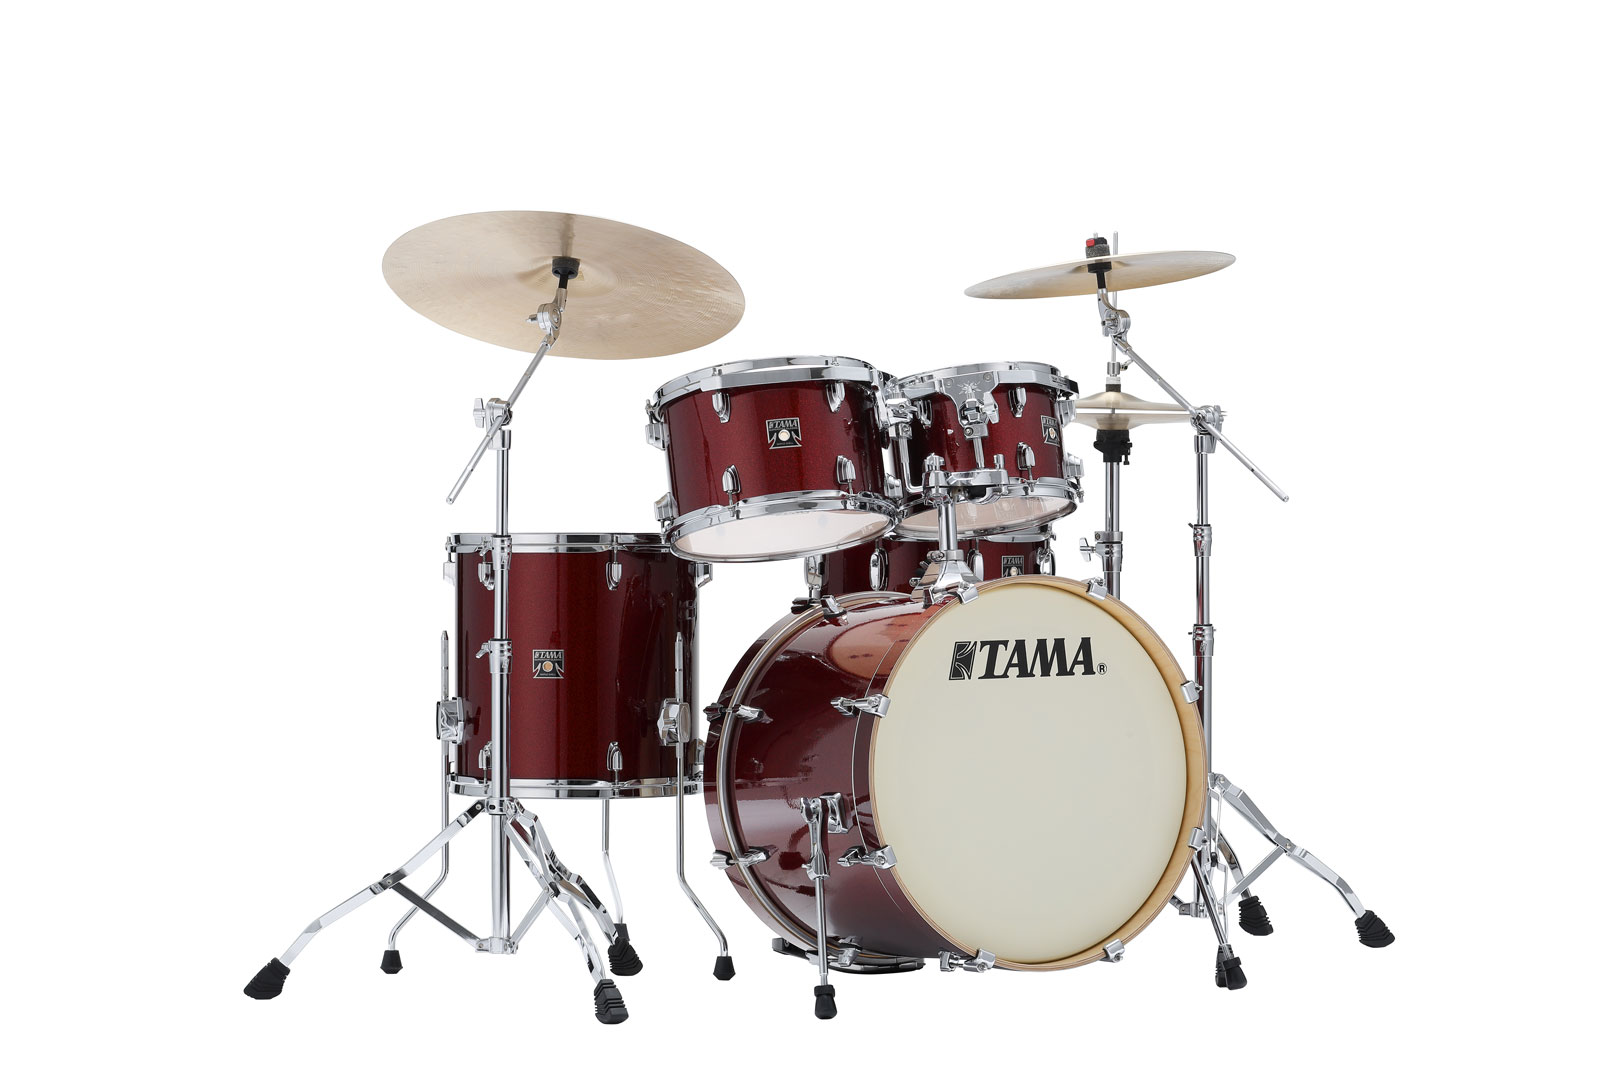 CK50RS-DRP - SUPERSTAR CLASSIC MAPLE (UNICOLOR WRAP) 20/10/12/14/14X5 DARK RED SPARKLE